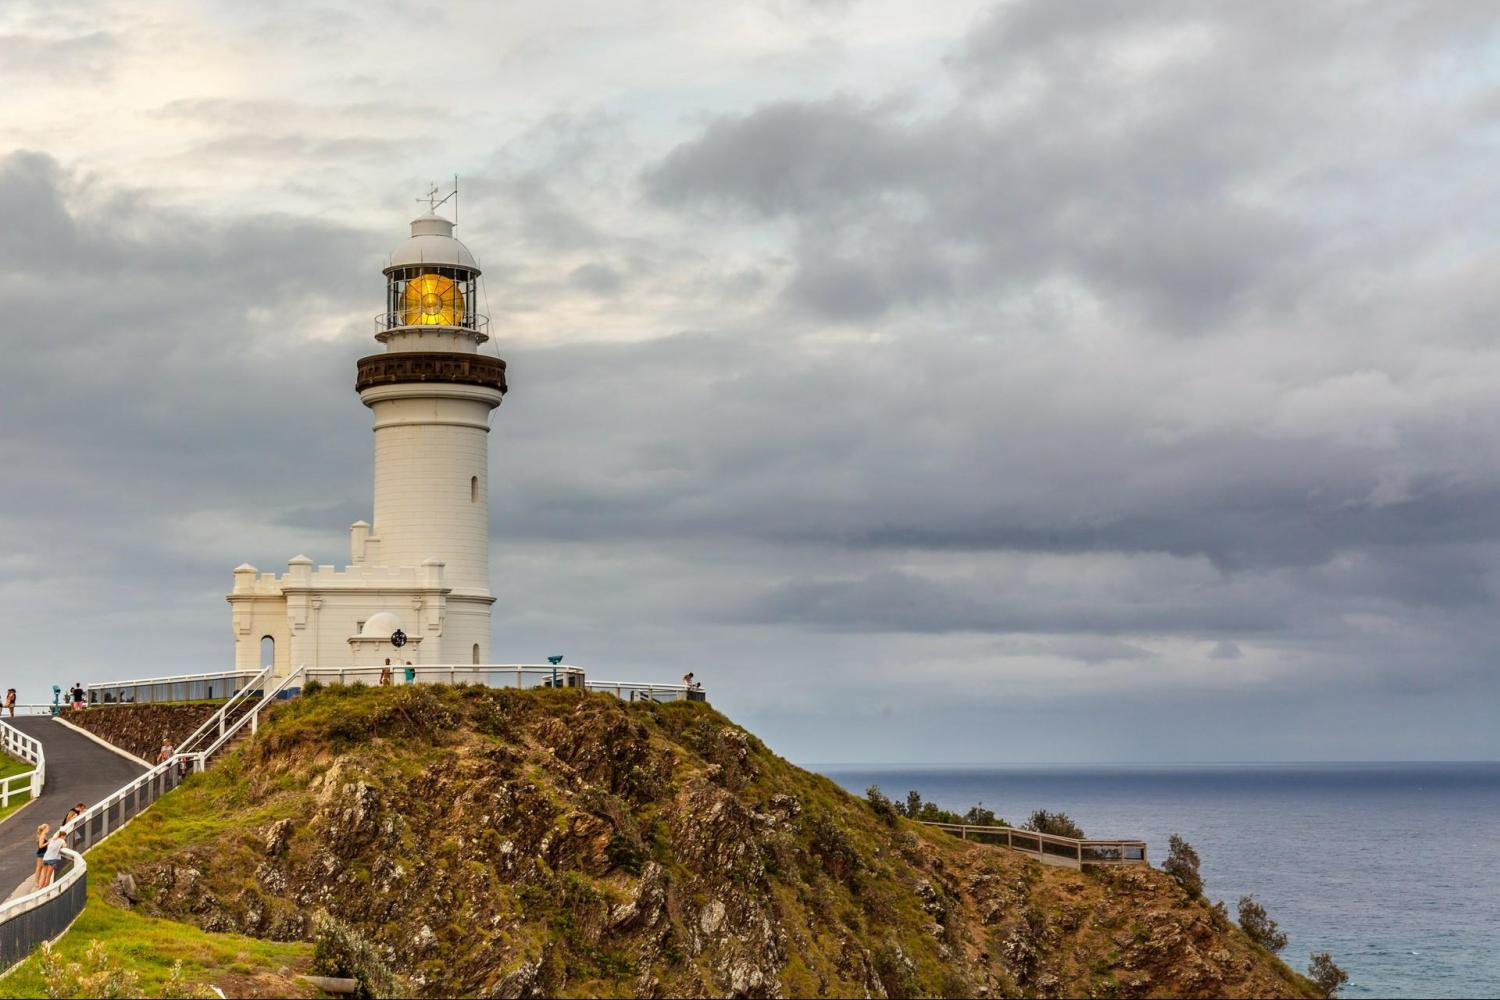 Cape Byron Lighthouse built in 1901